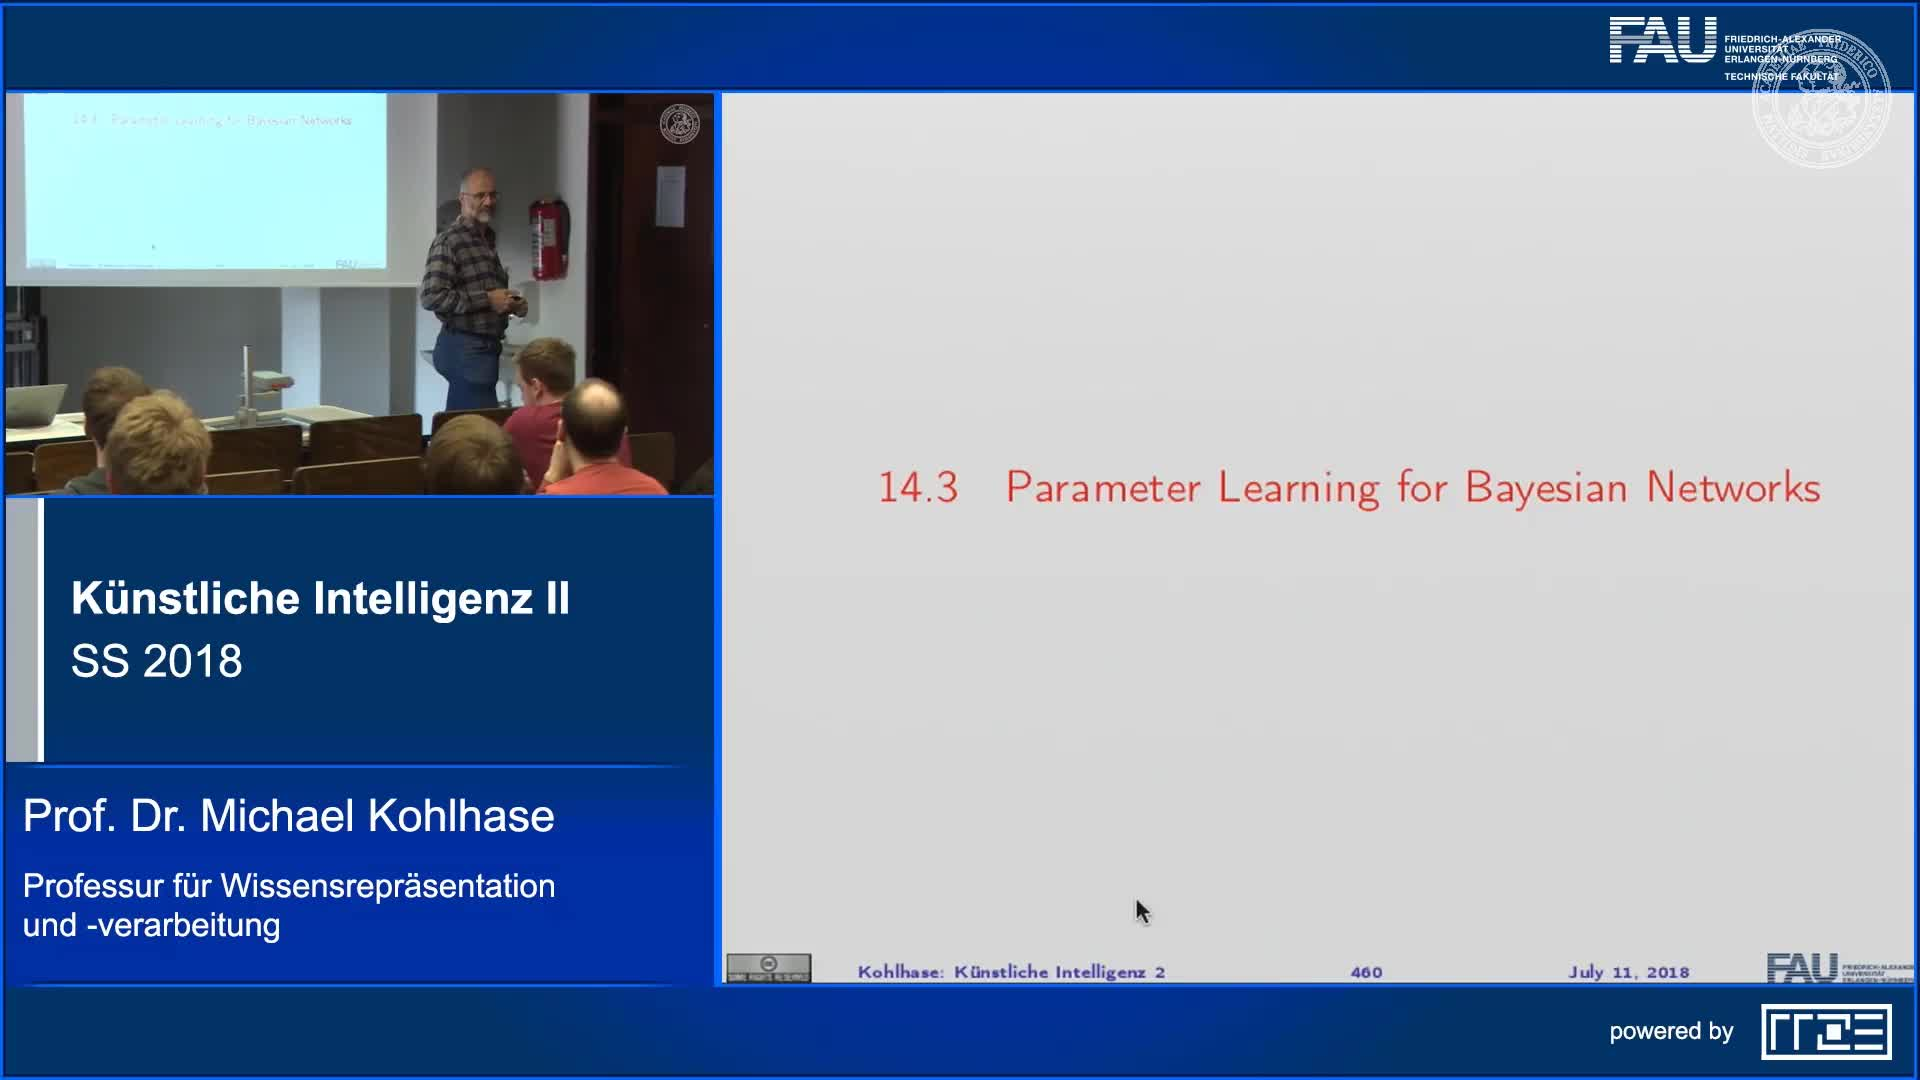 26.3. Parameter Learning for Bayesian Networks preview image